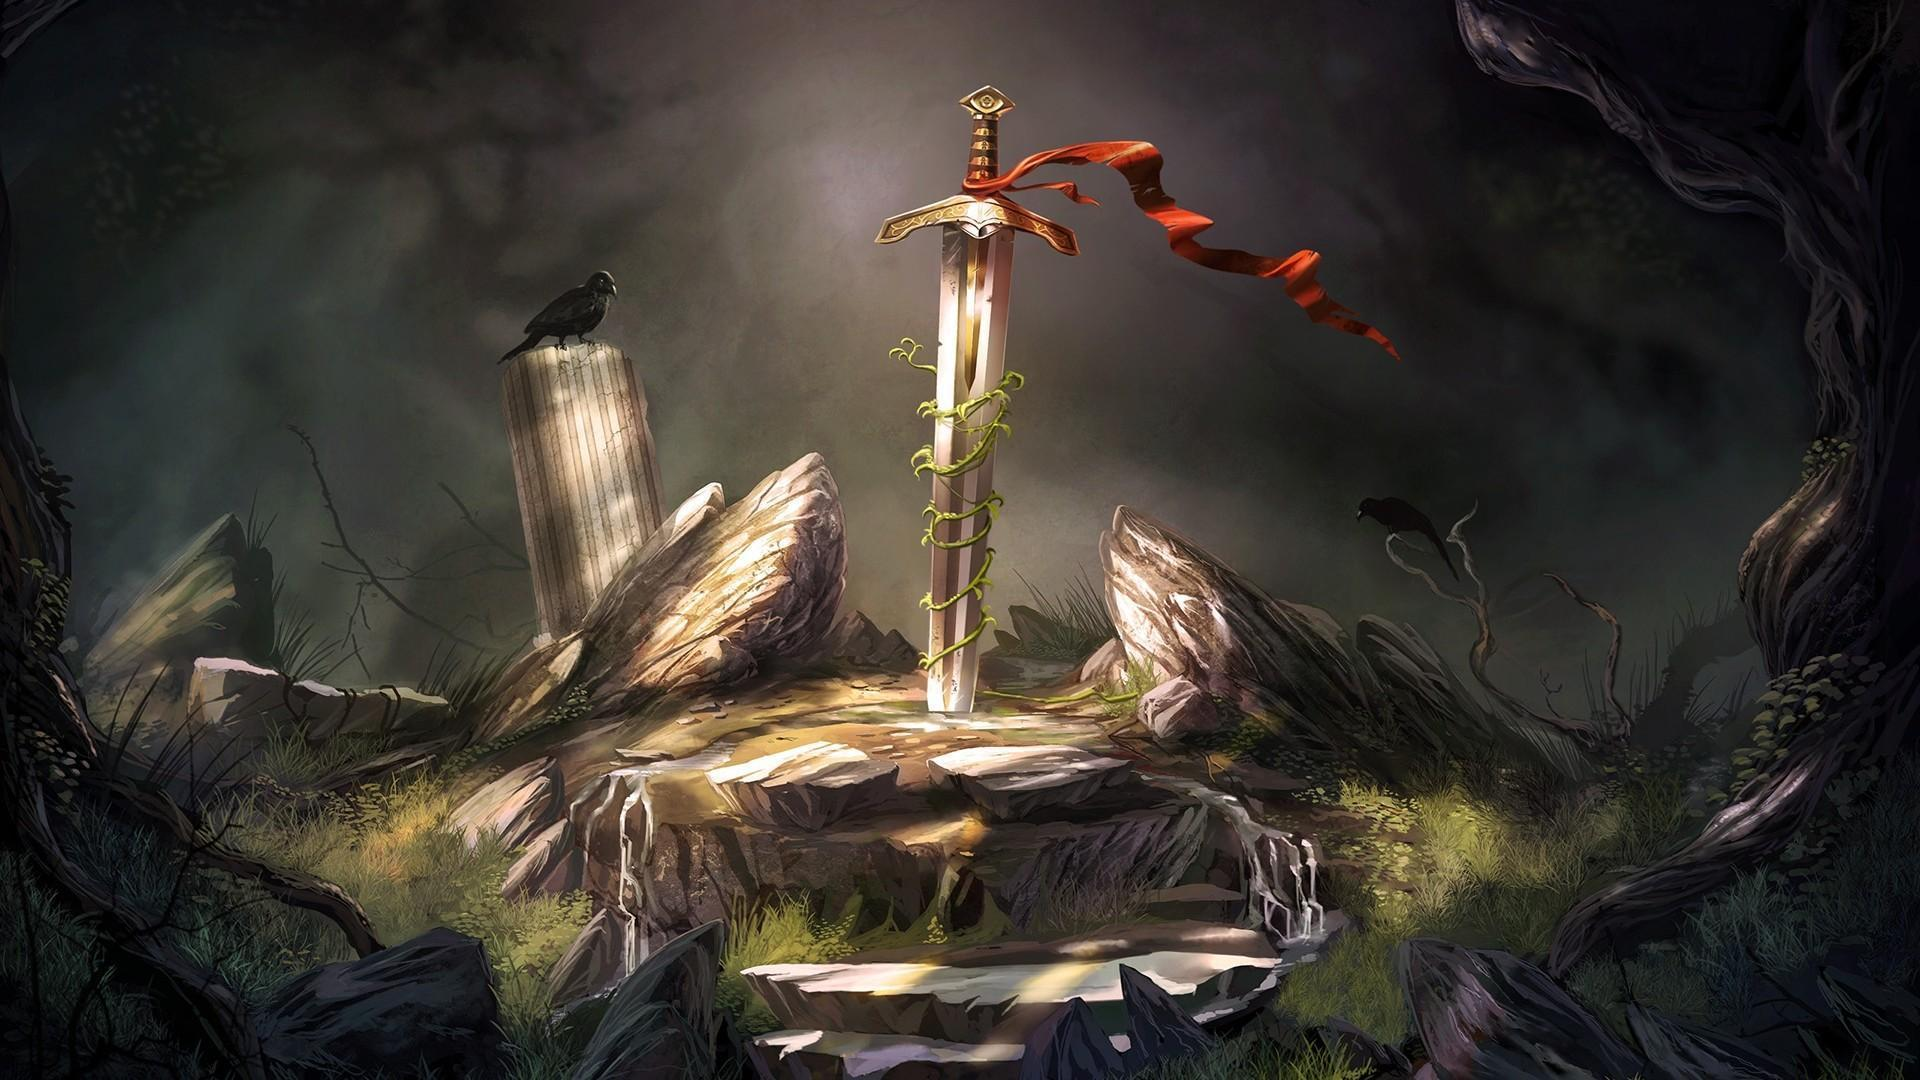 Excalibur Wallpapers Top Free Excalibur Backgrounds